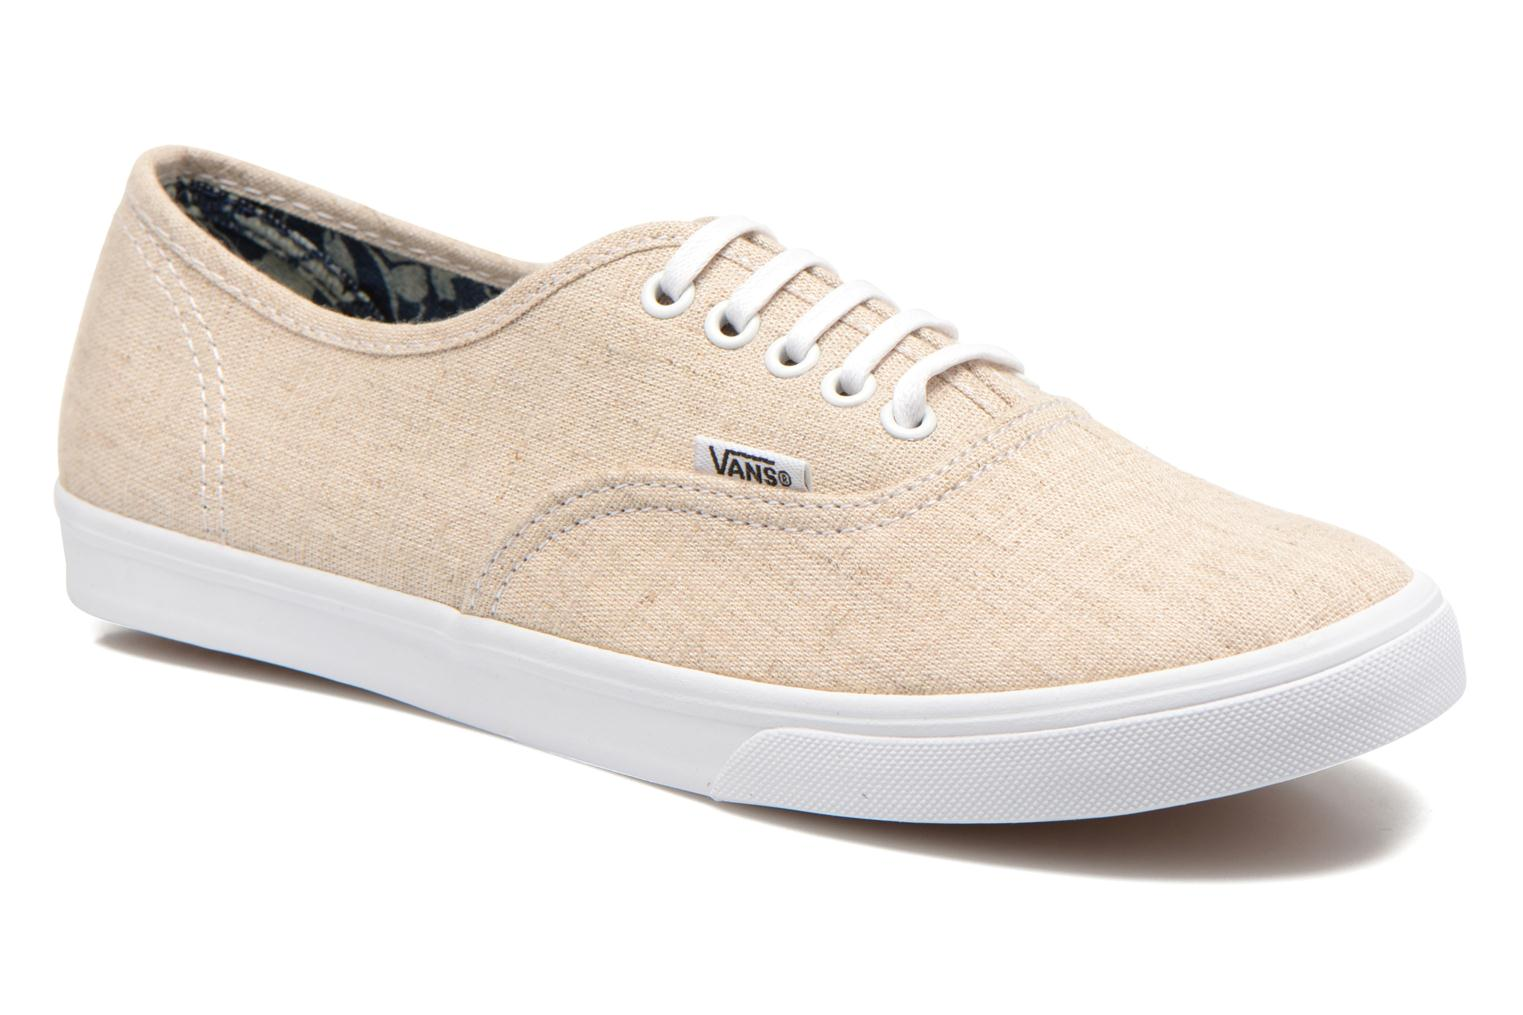 Authentic Lo Pro W (Indigo Tropical) natural/true white